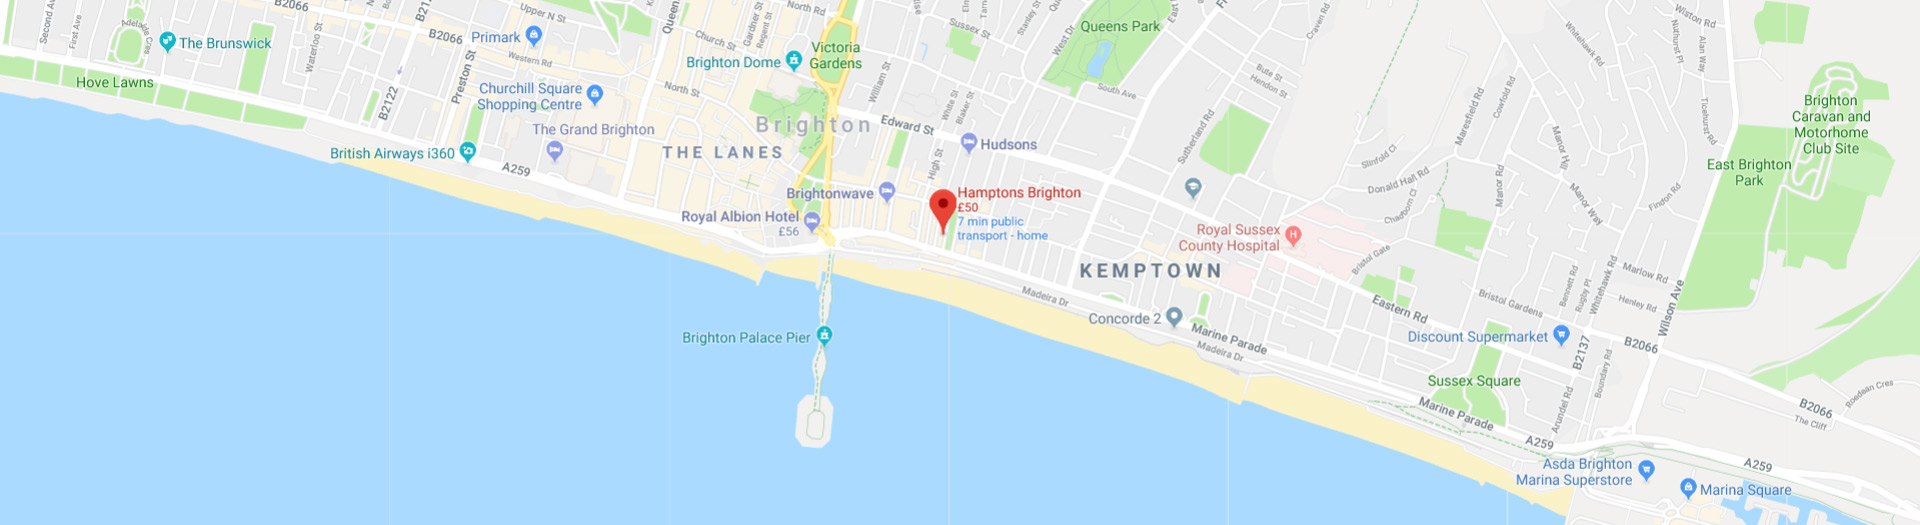 hamptons location map